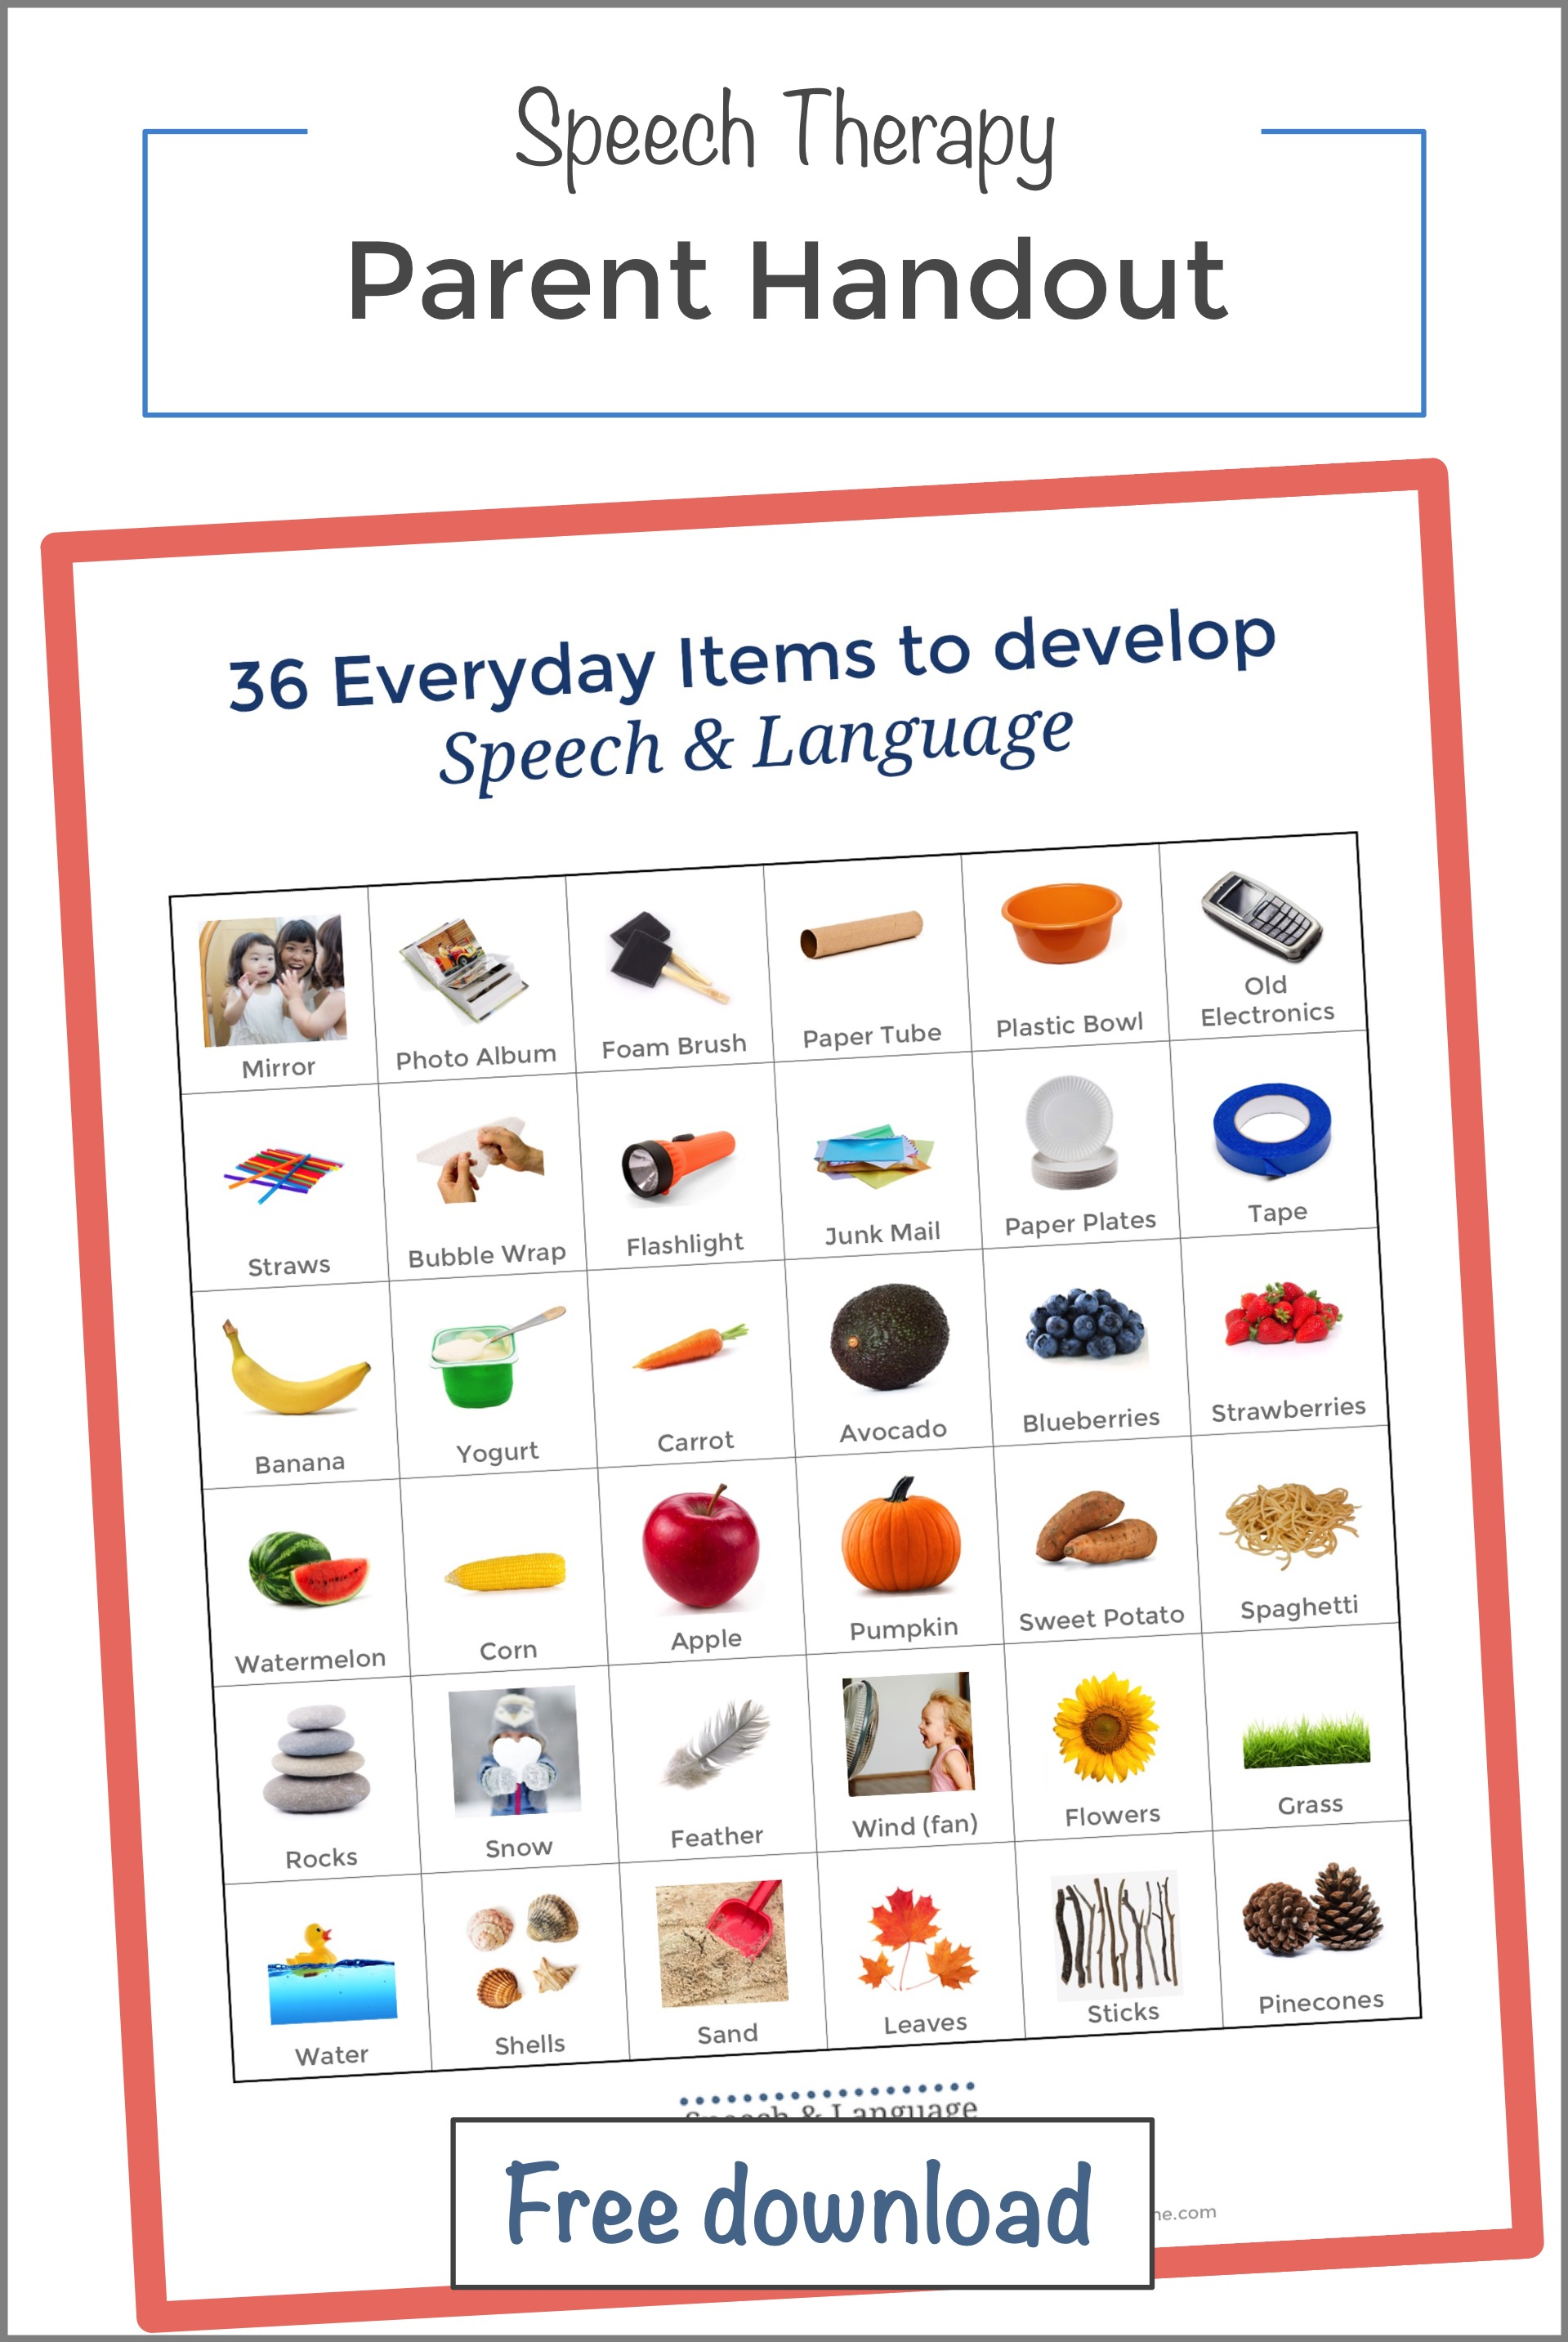 Everyday Item Ideas to use in speech therapy by speech and language at home.jpg